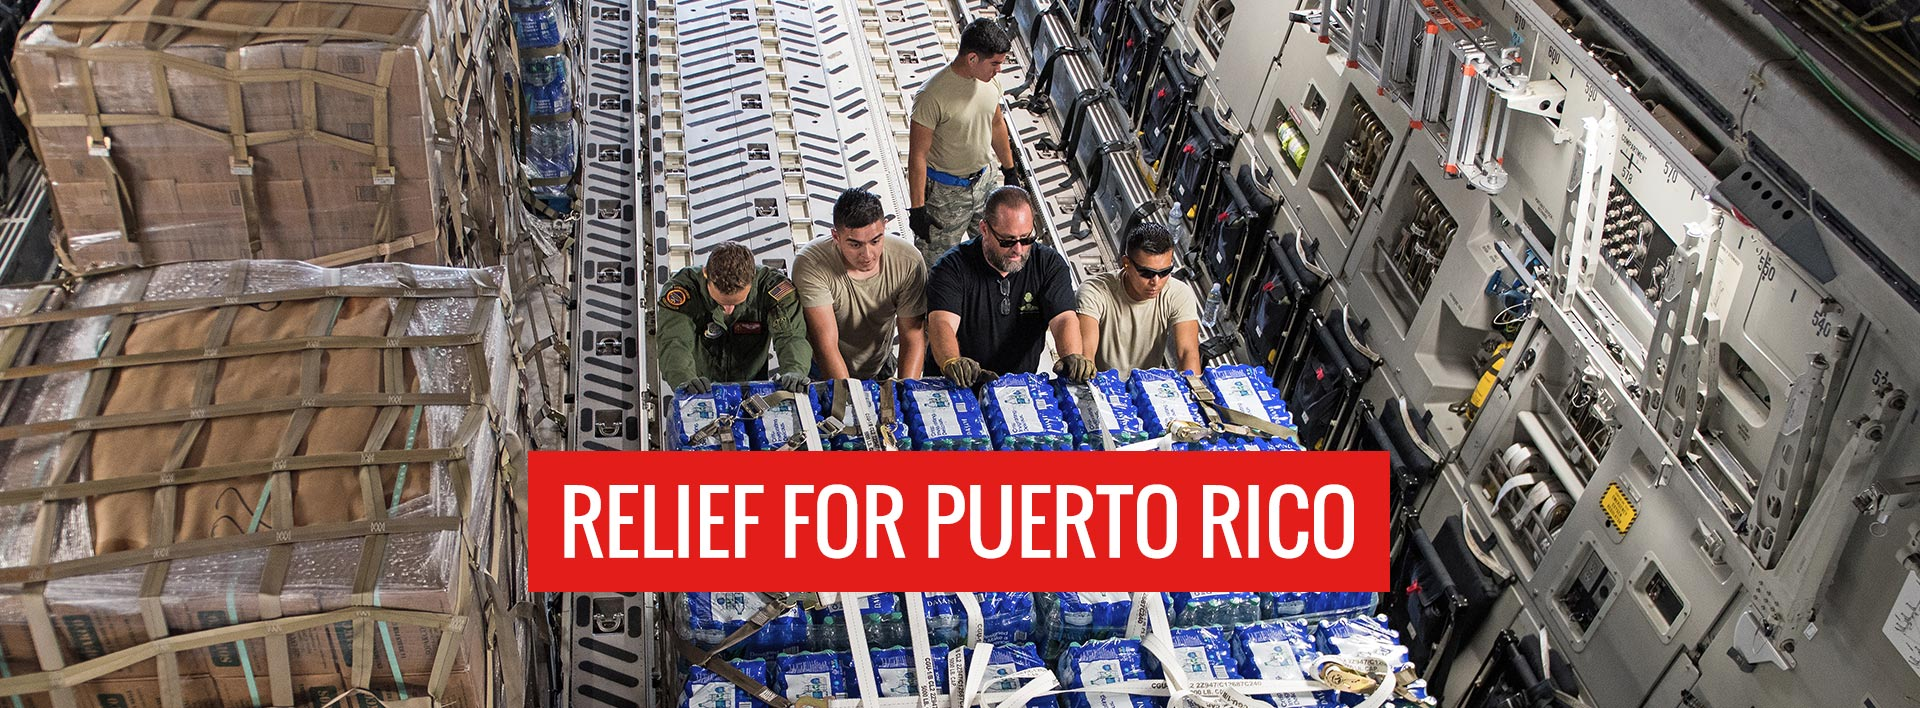 Relief for Puerto Rico, Hurricane Maria relief